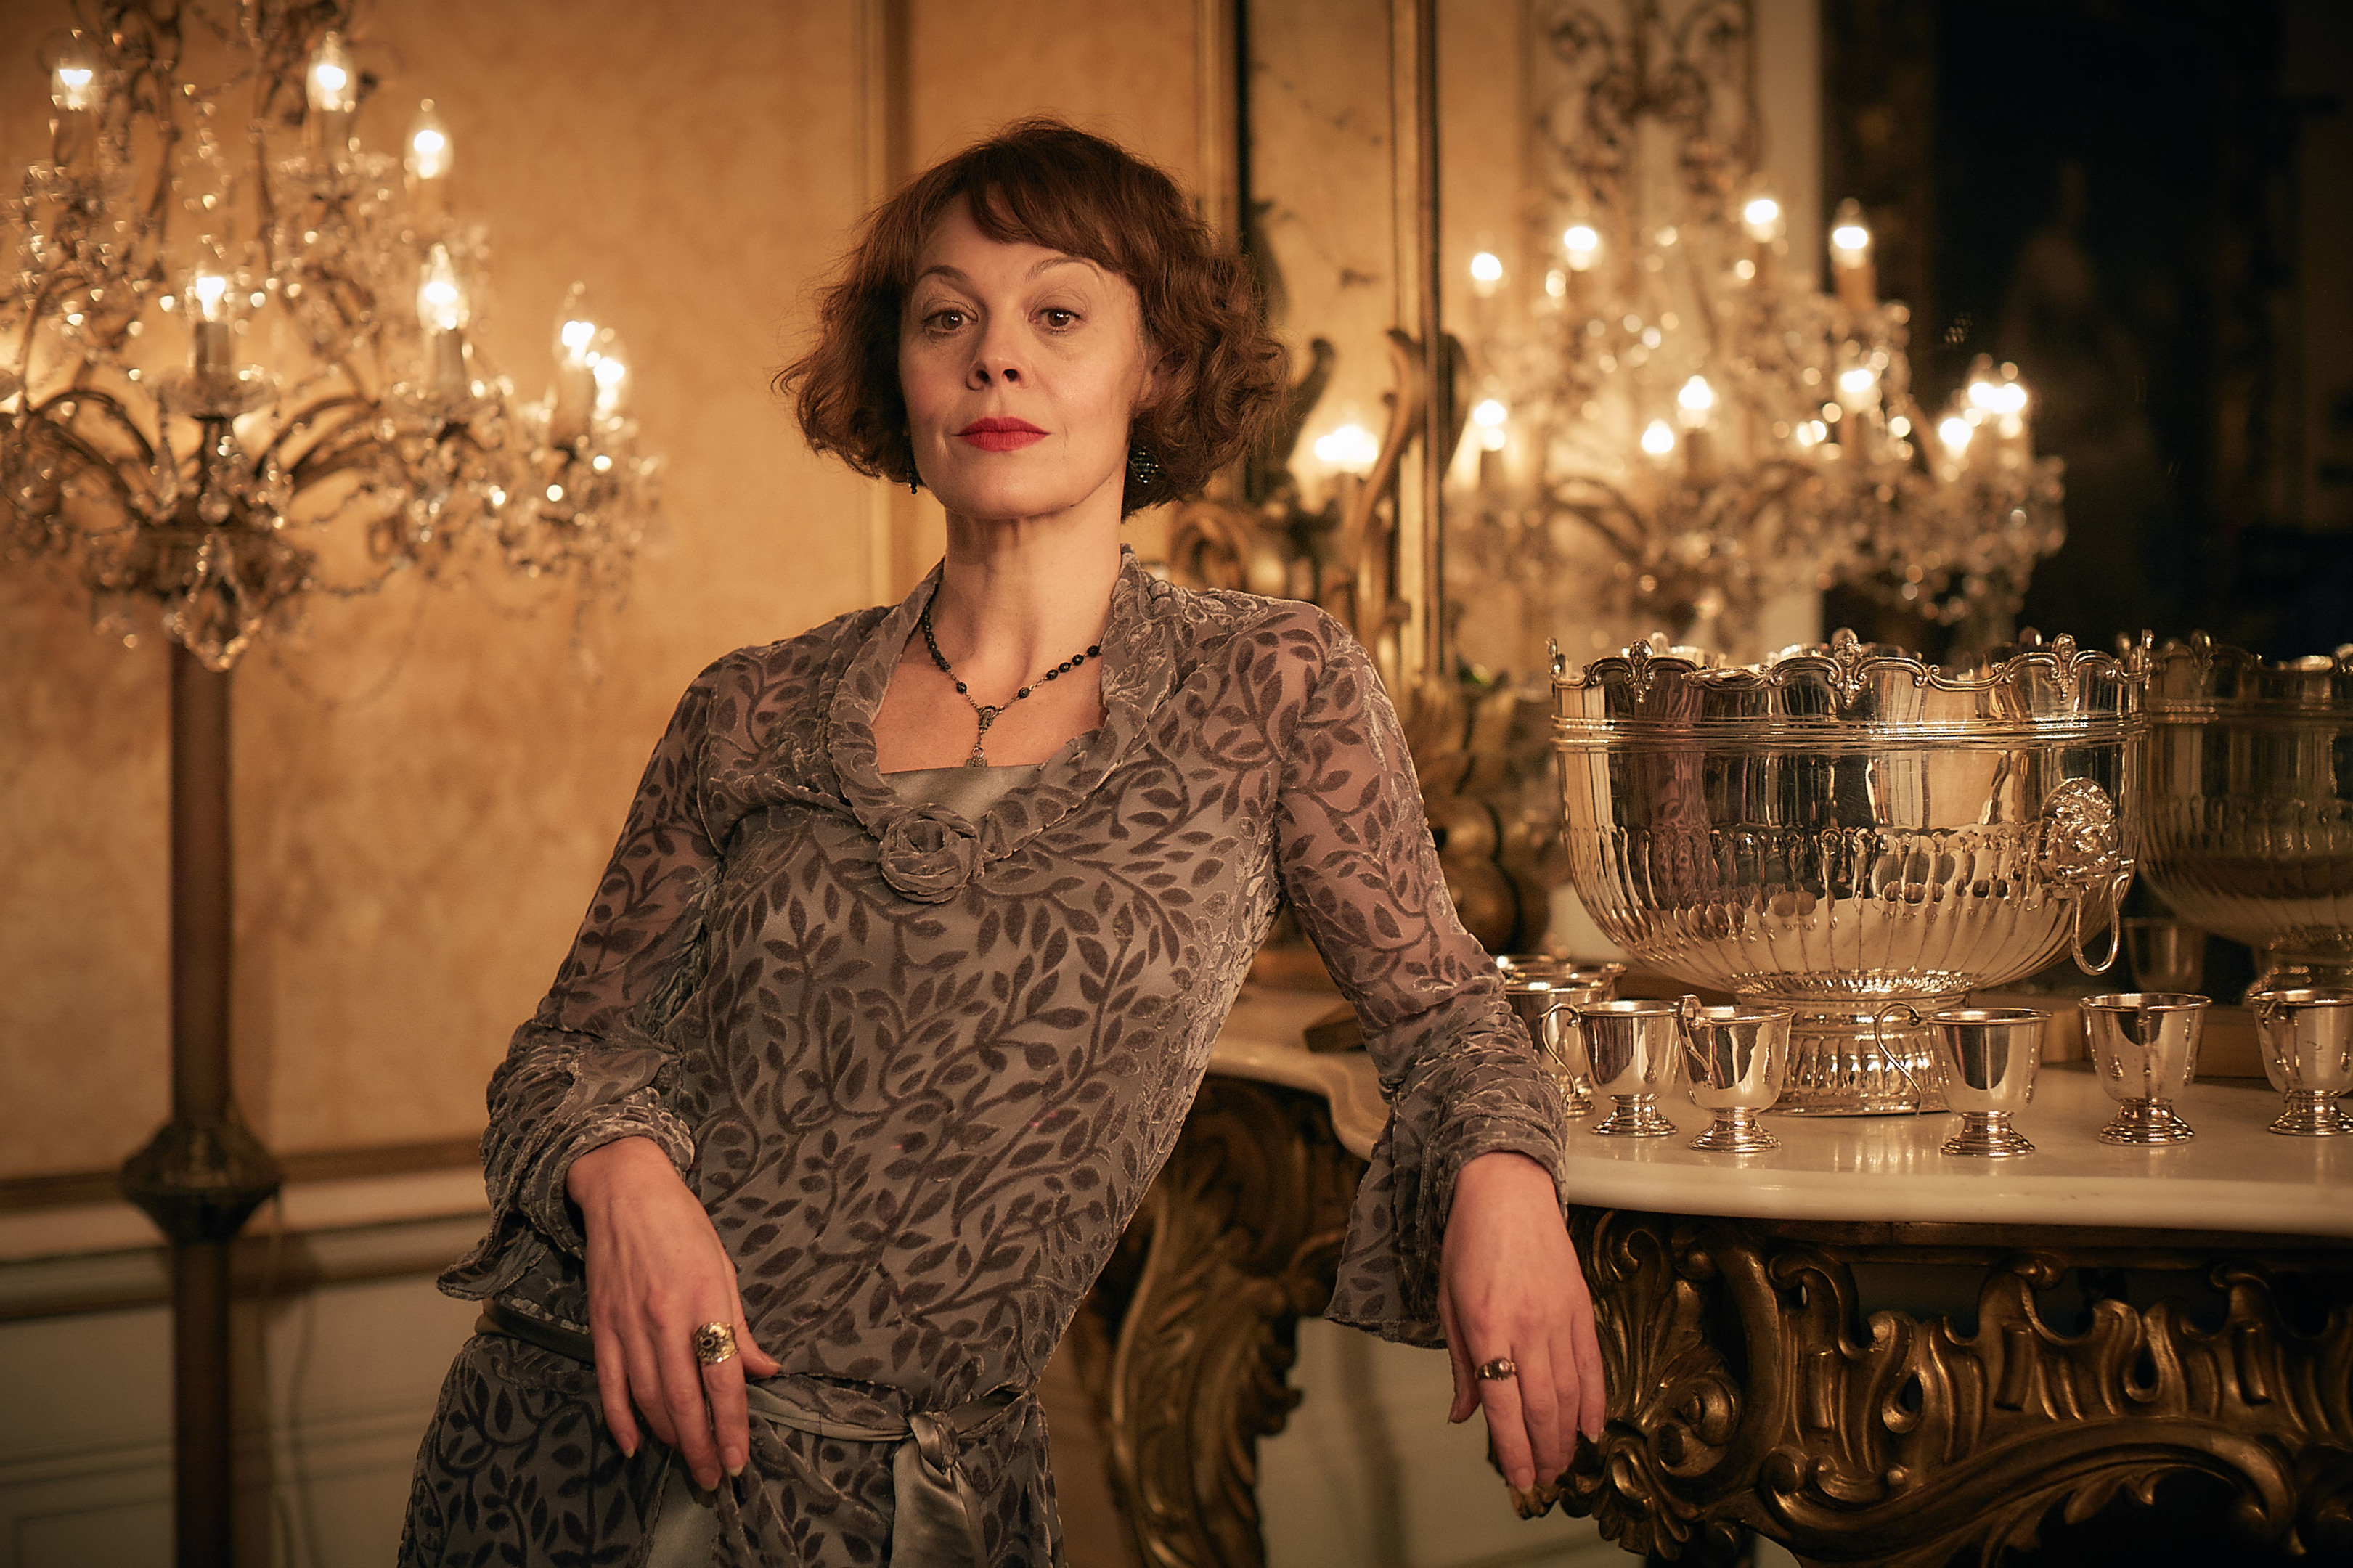 Helen McCrory as Aunt Polly Gray in Peaky Blinders (Caryn Mandabach Productions Ltd / Tiger Aspect Productions Ltd/ Robert Viglasky)